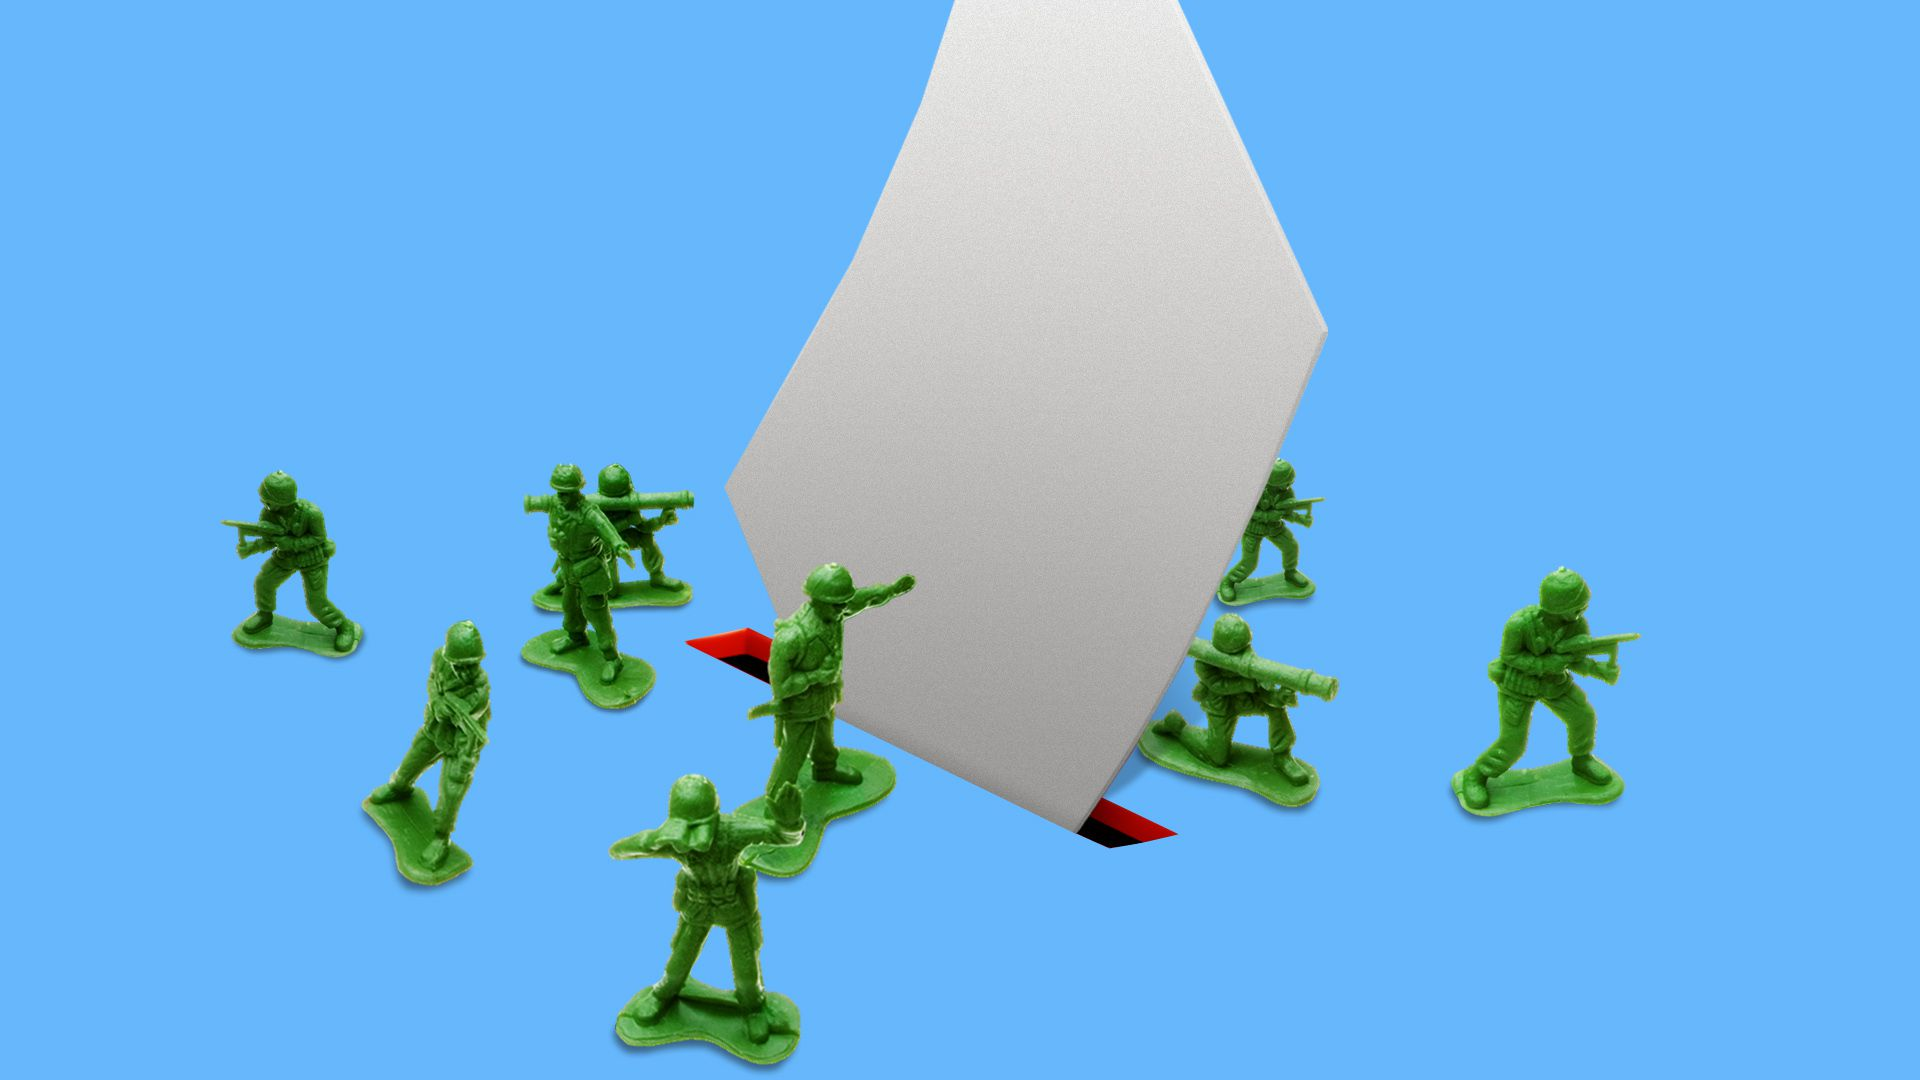 Illustration of green army figurines surrounding a paper ballot going into a red election slot over a blue background.